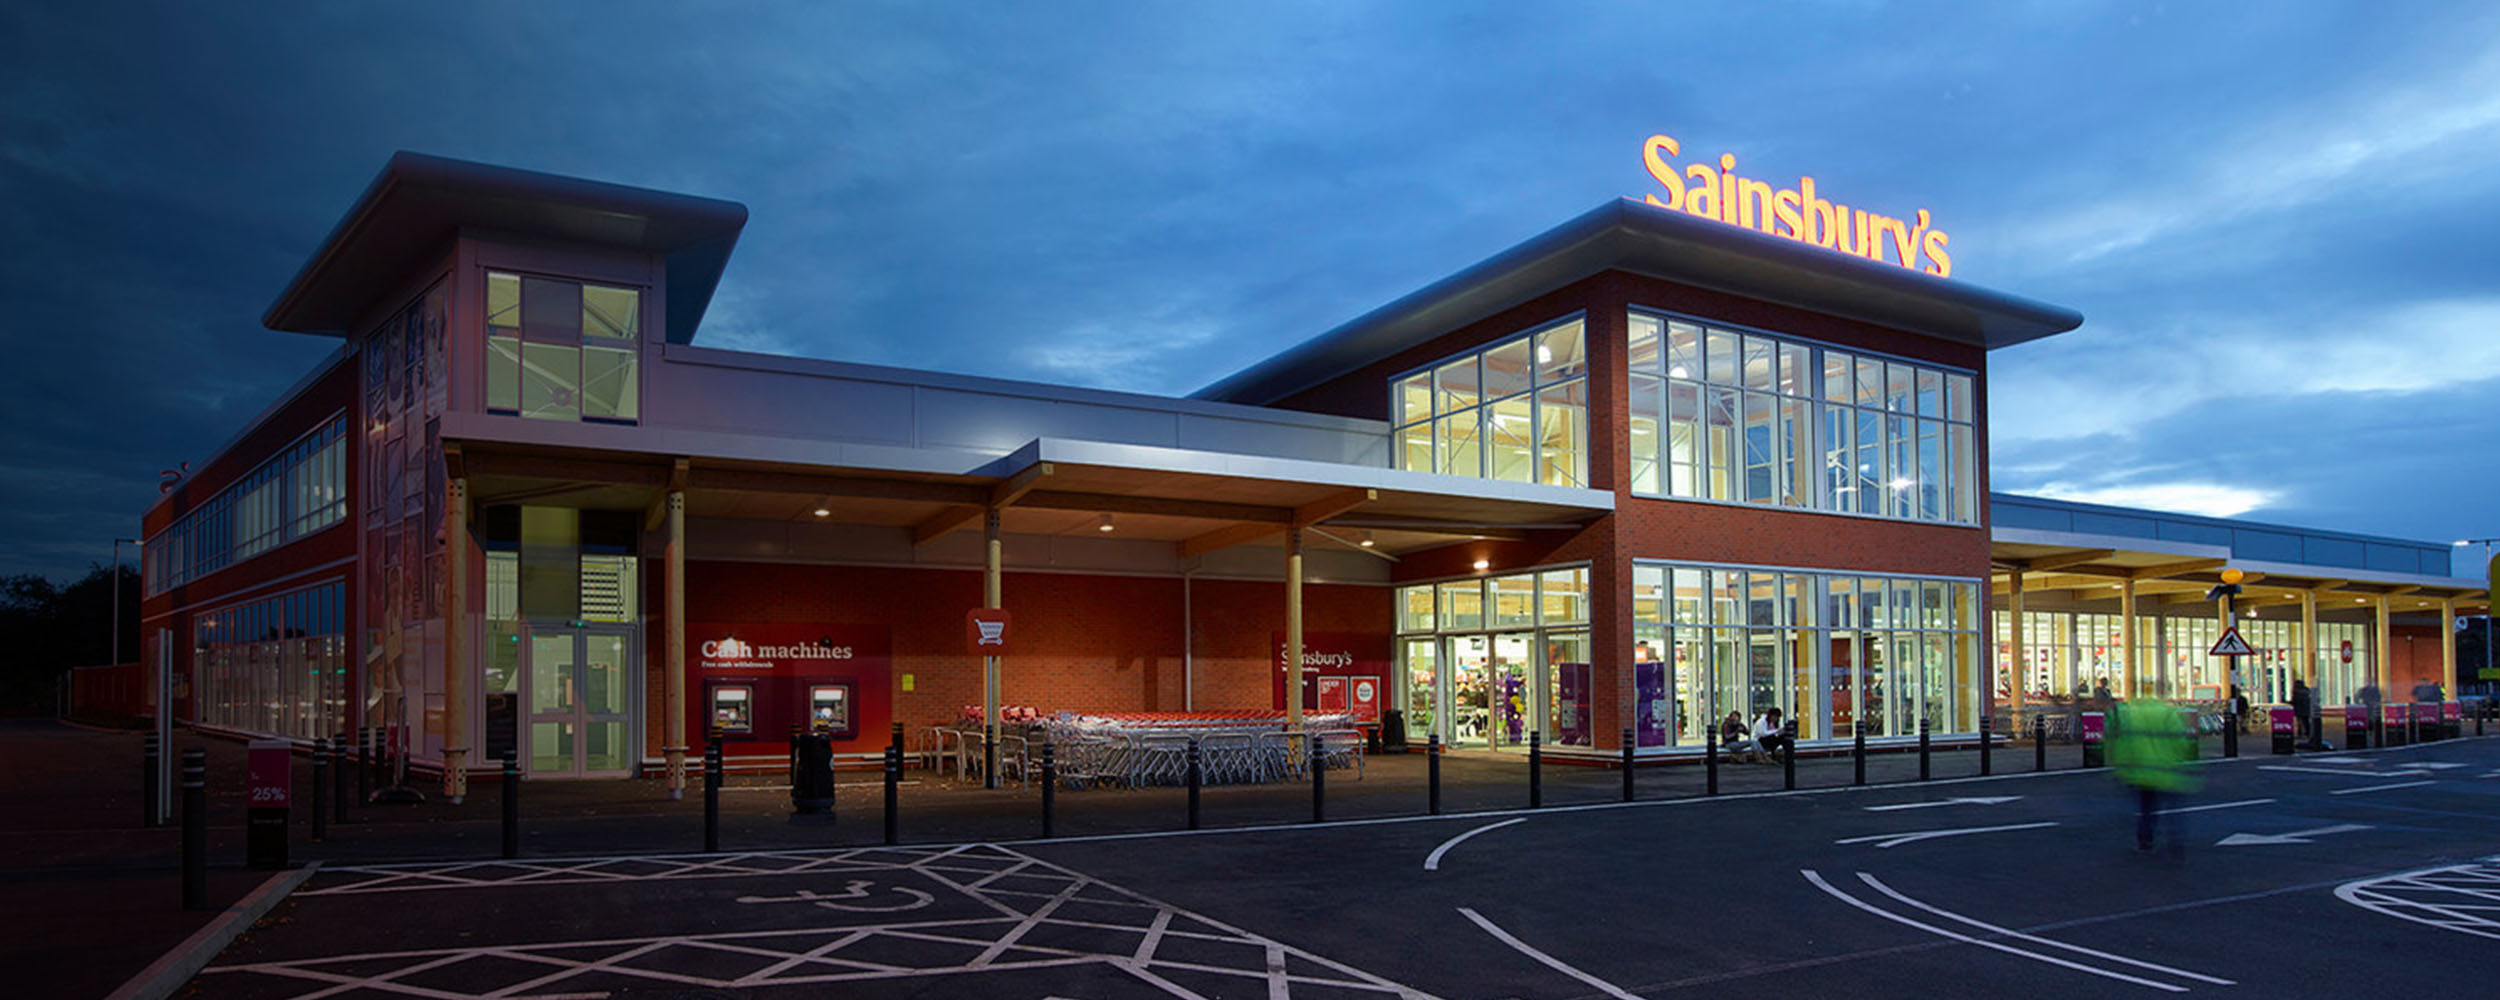 Sainsburys, Melton Mowbray